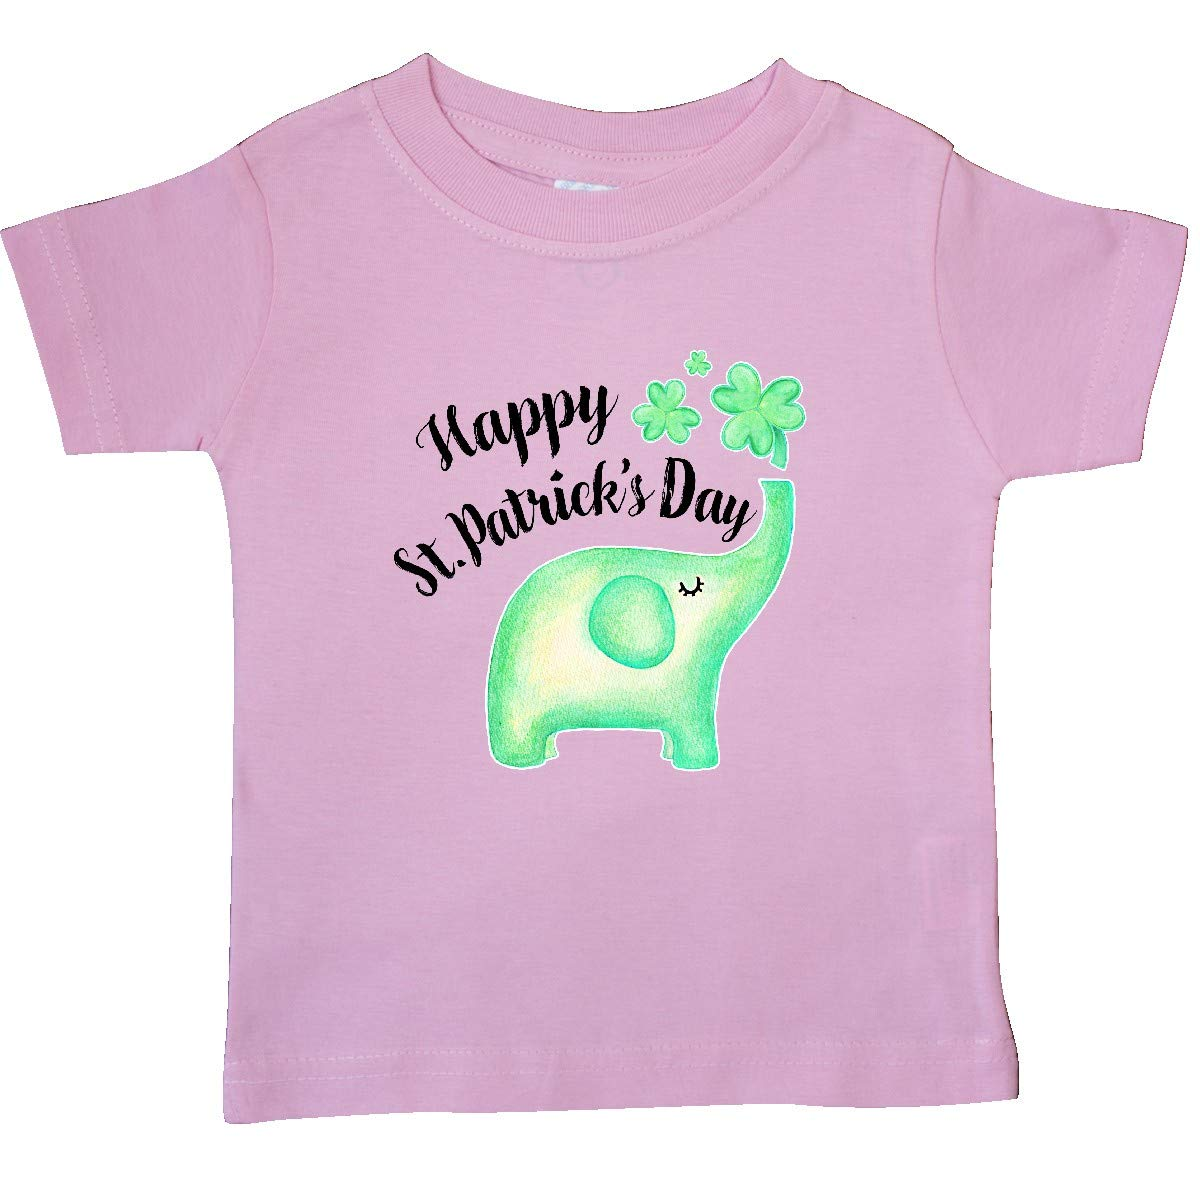 inktastic Happy St Patricks Day Green Elephant Baby T-Shirt